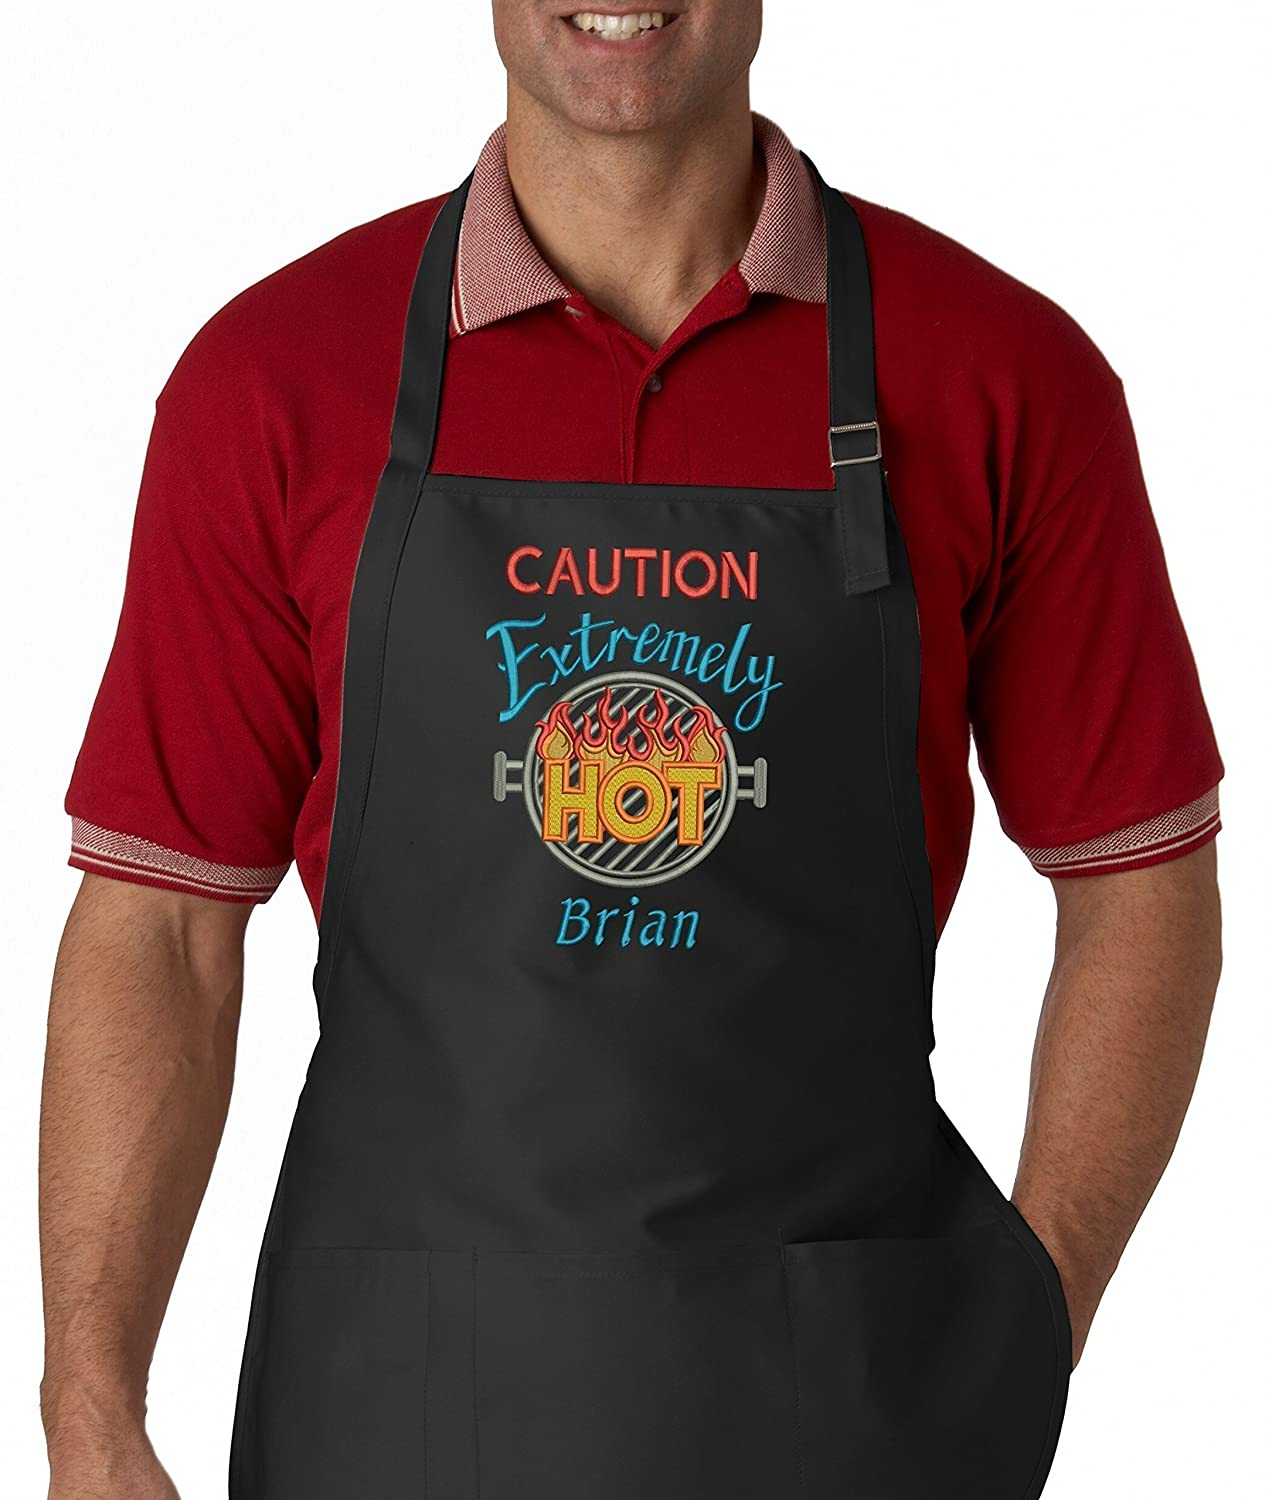 Caution Extremely Hot Personalized Men's Embroidered BBQ Apron